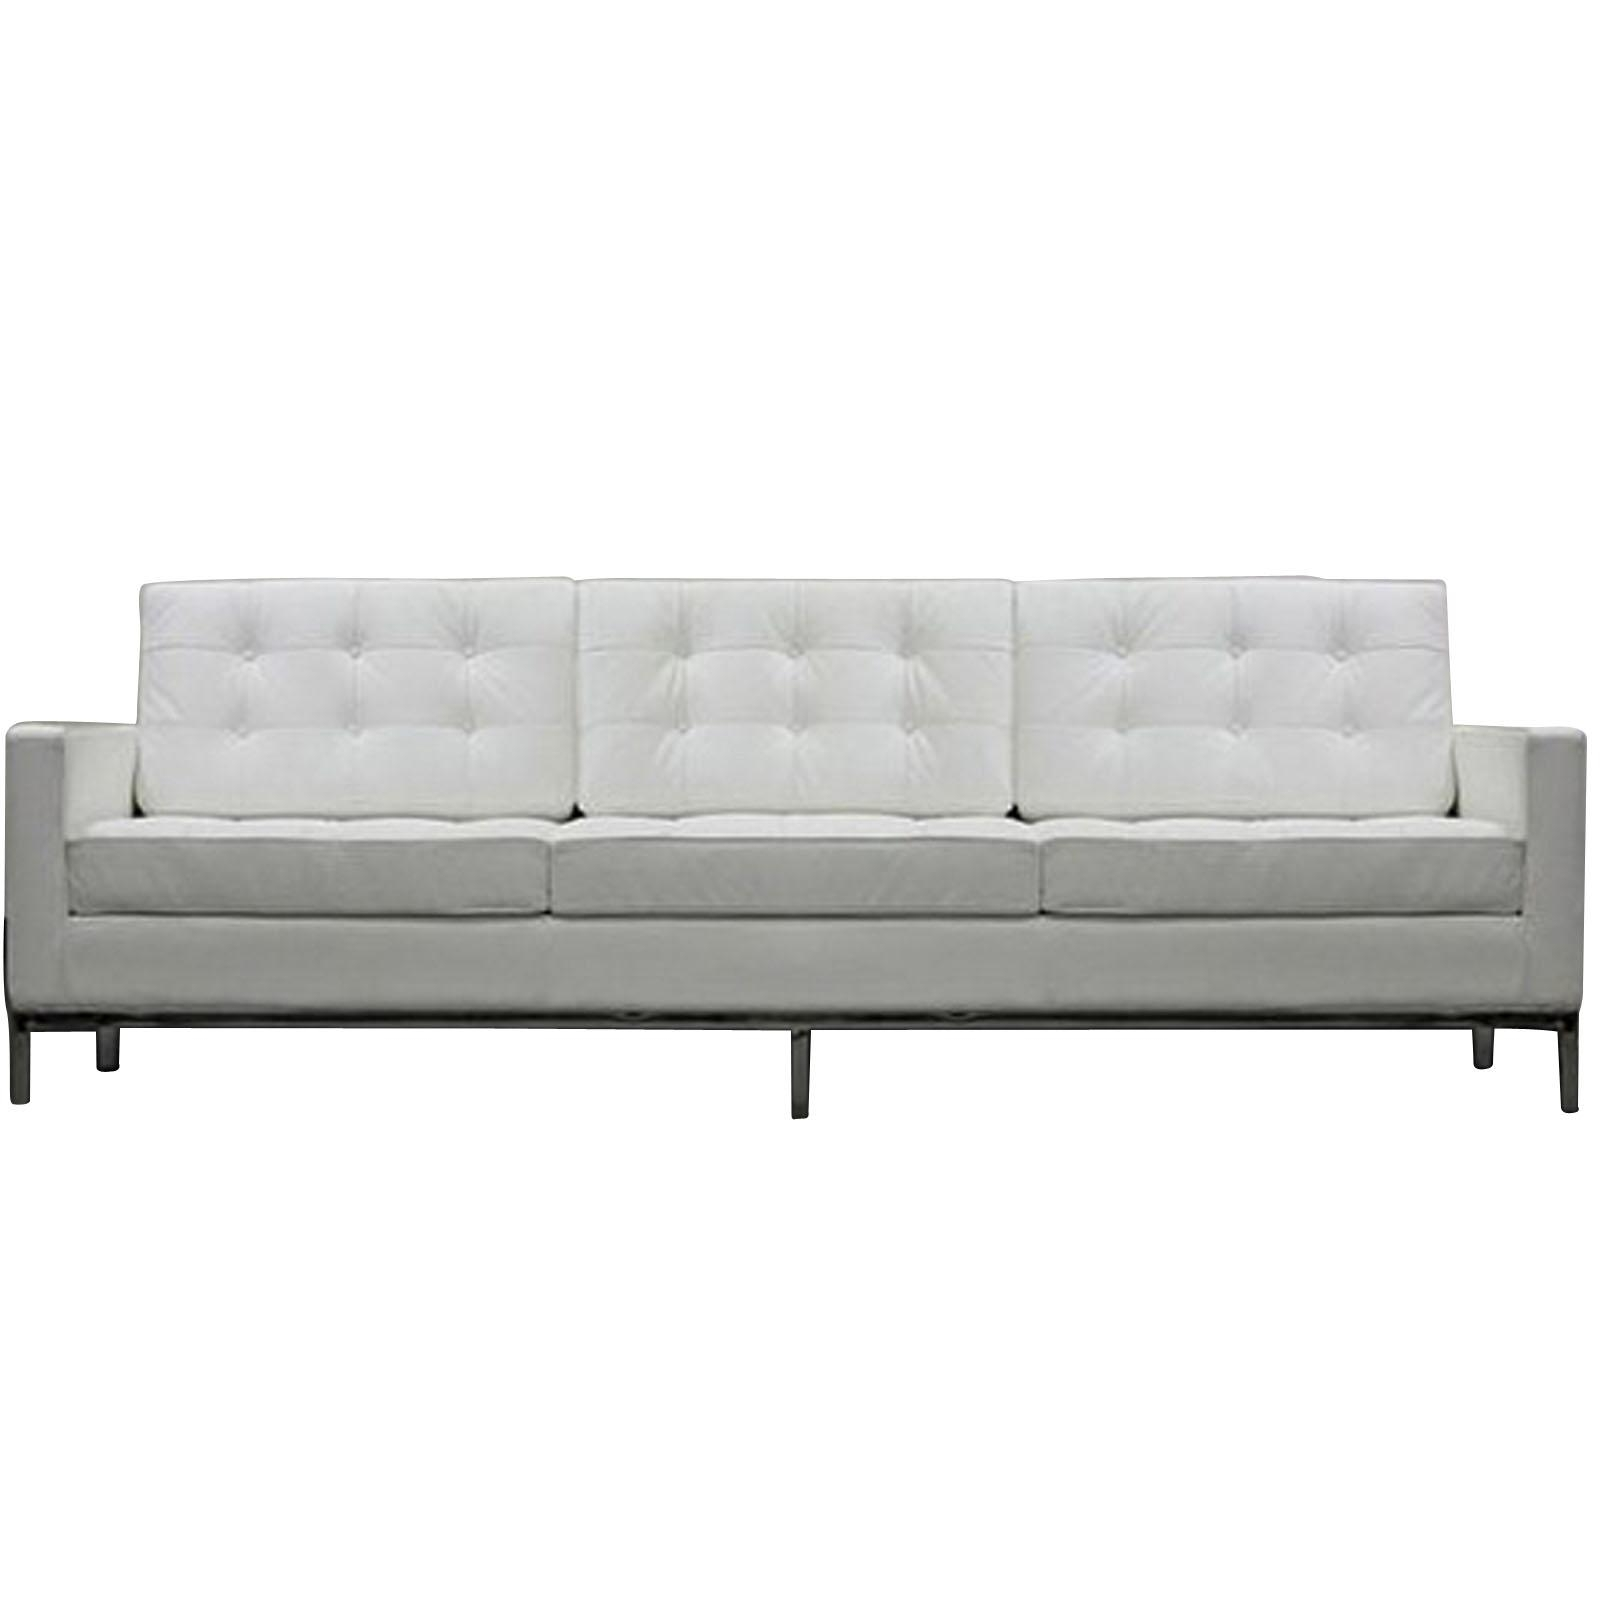 Florence Knoll Style Sofa Couch – Leather For Florence Knoll Style Sofas (View 10 of 20)